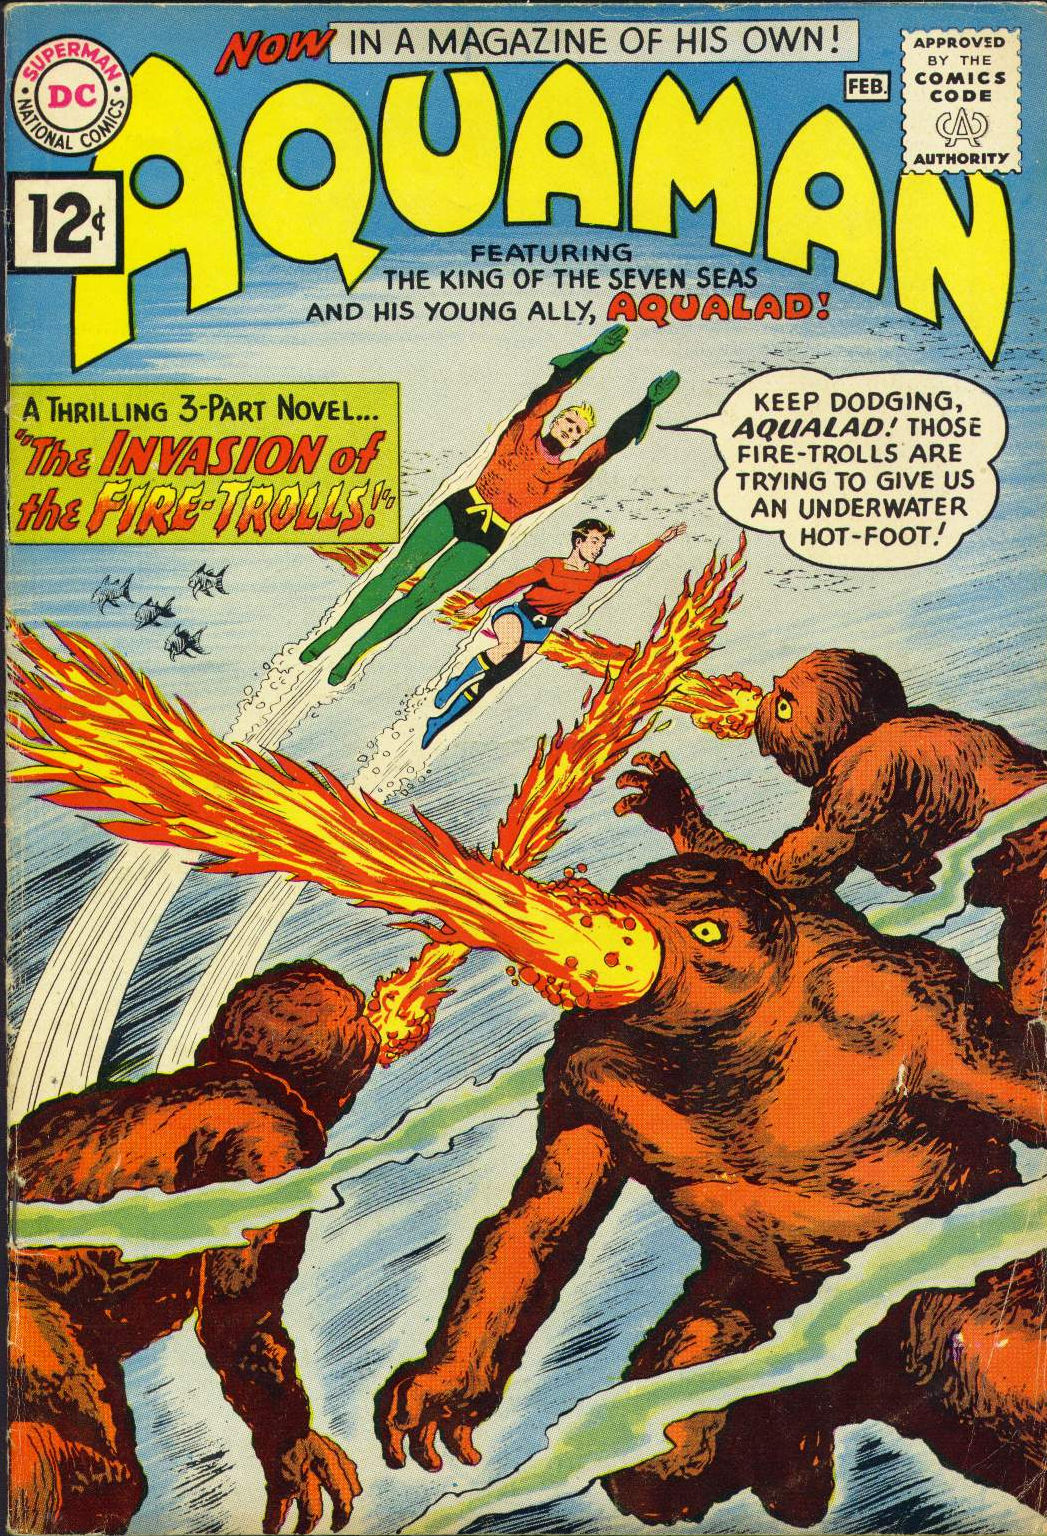 Aquaman (1962) #1, cover by Nick Cardy.